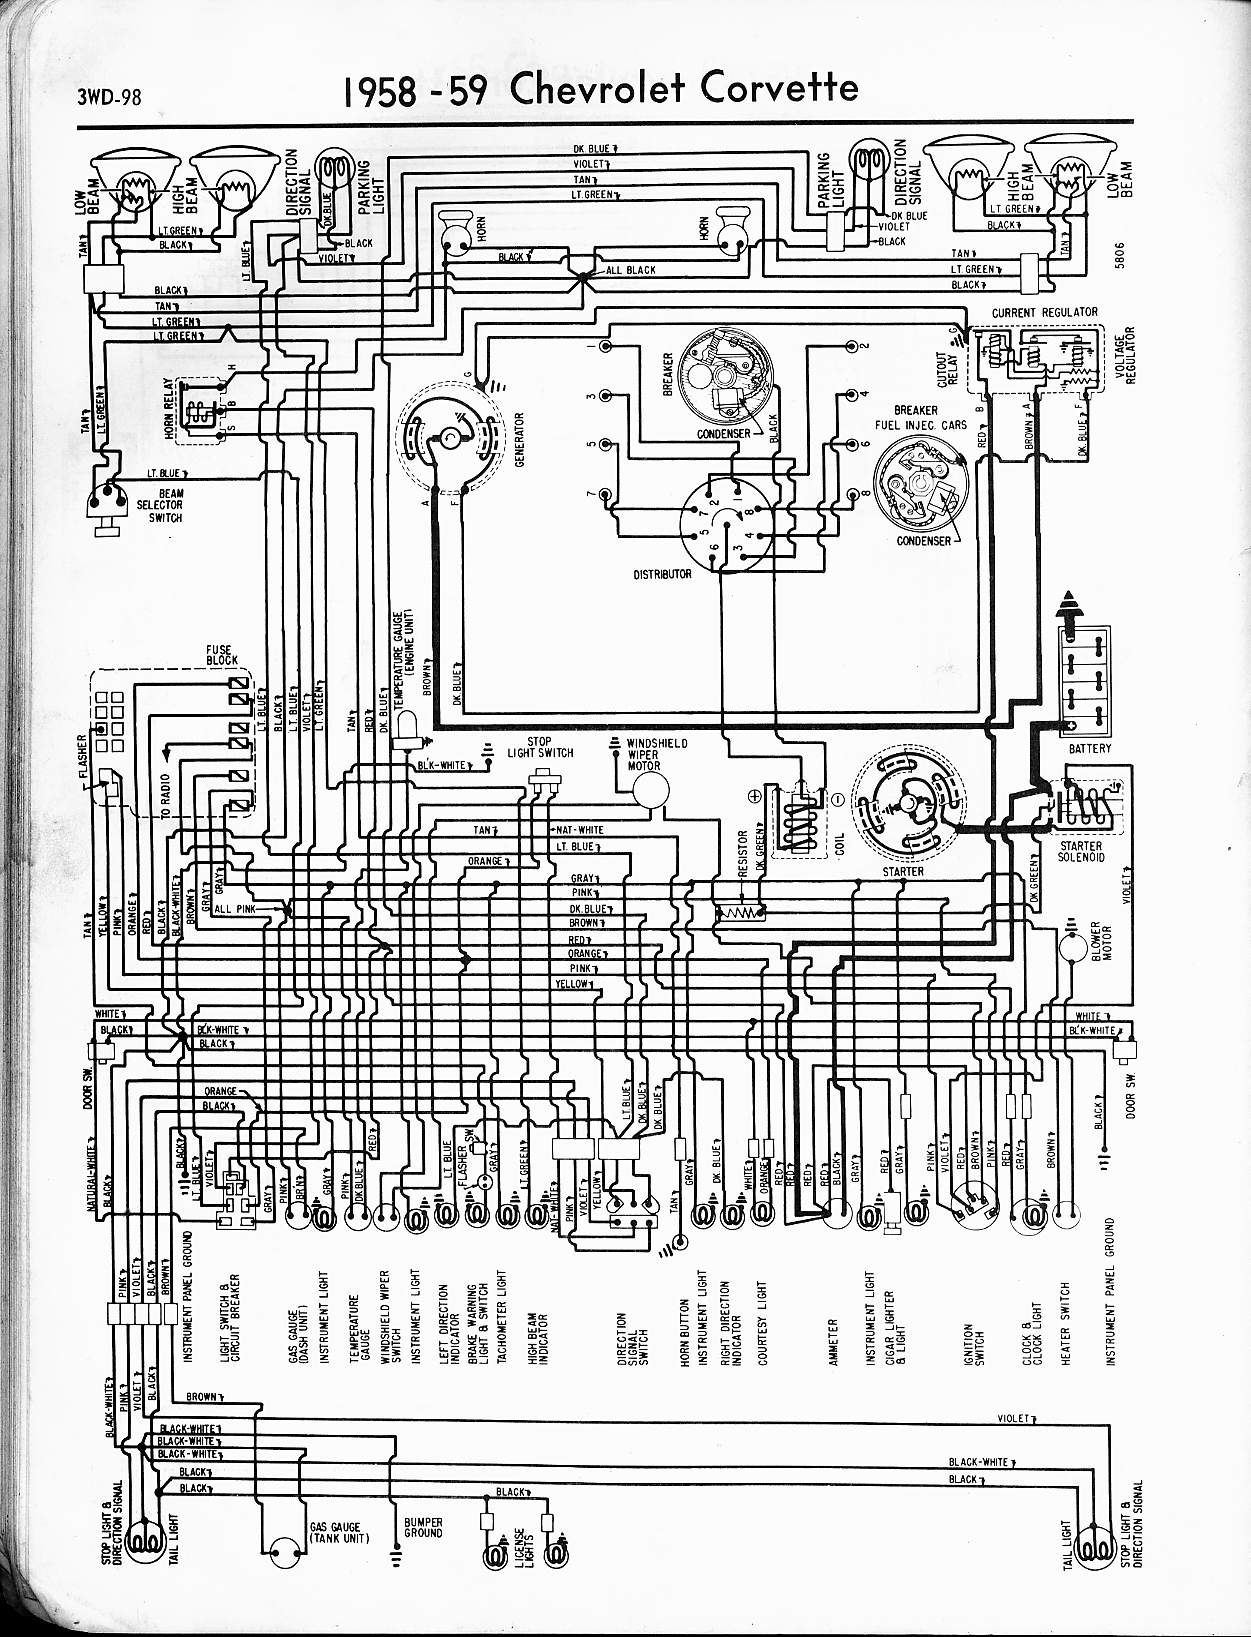 1957 Chevy Ignition Wiring Diagram Trusted Wiring Diagrams \u2022 65 Chevy  Truck Wiring Diagram 57 Chevy Heater Wiring